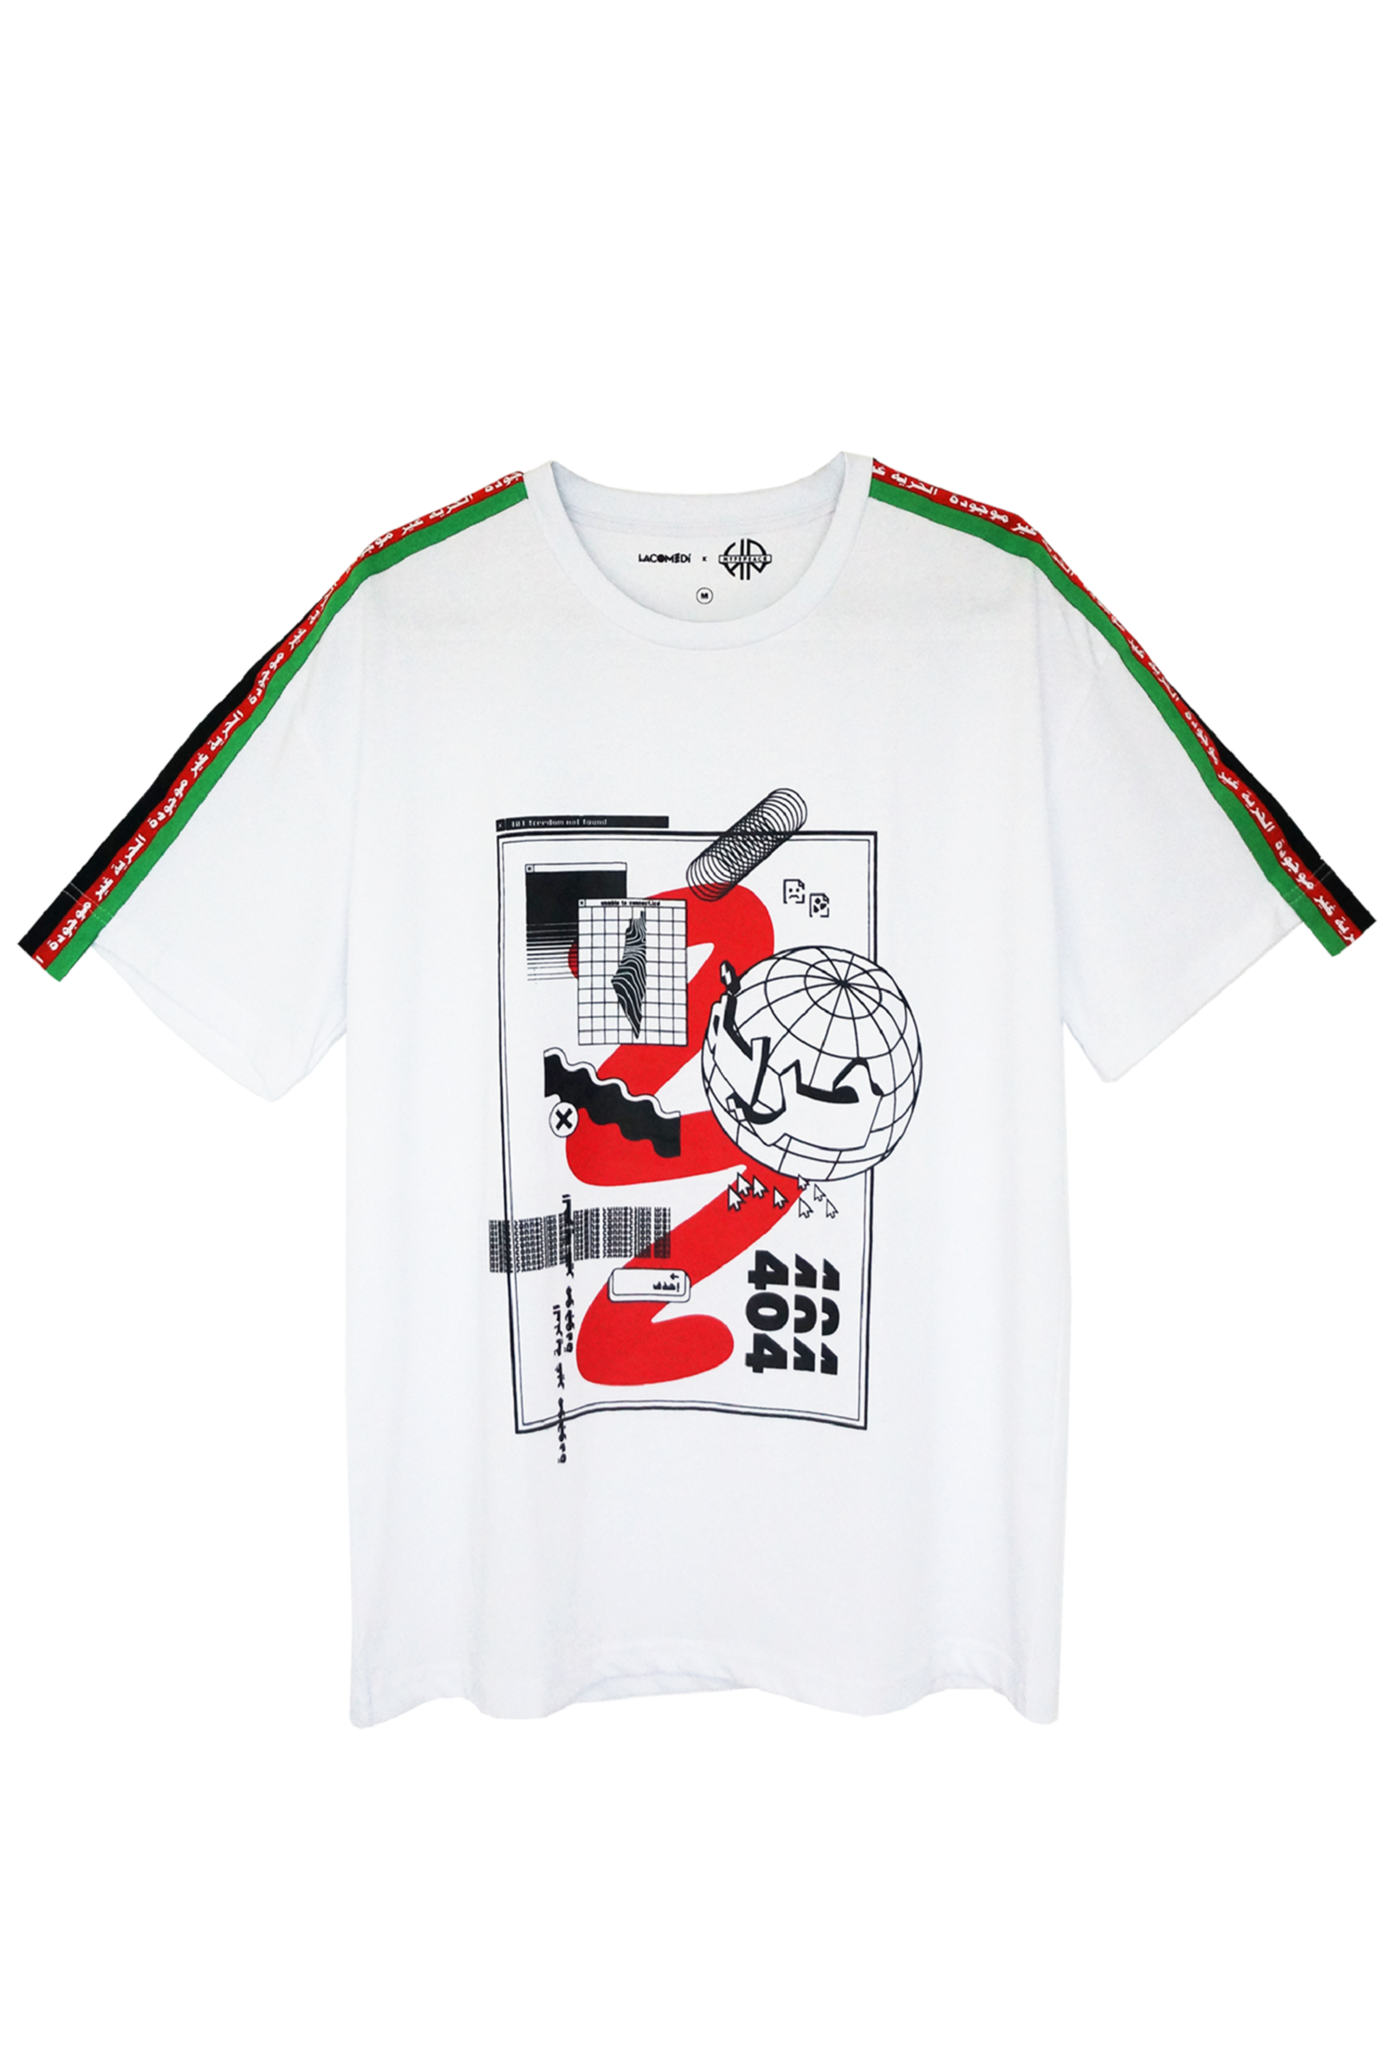 LaComedi_Hypepeace_COLLAB_T-SHIRT_FRONT_EDIT_augmented_reality_fashion_graphic_print_t-shirt_palestine_1024x1024_2x_761c7dcd-db68-4d23-a51d-d711a654813f_1024x1024@2x.png